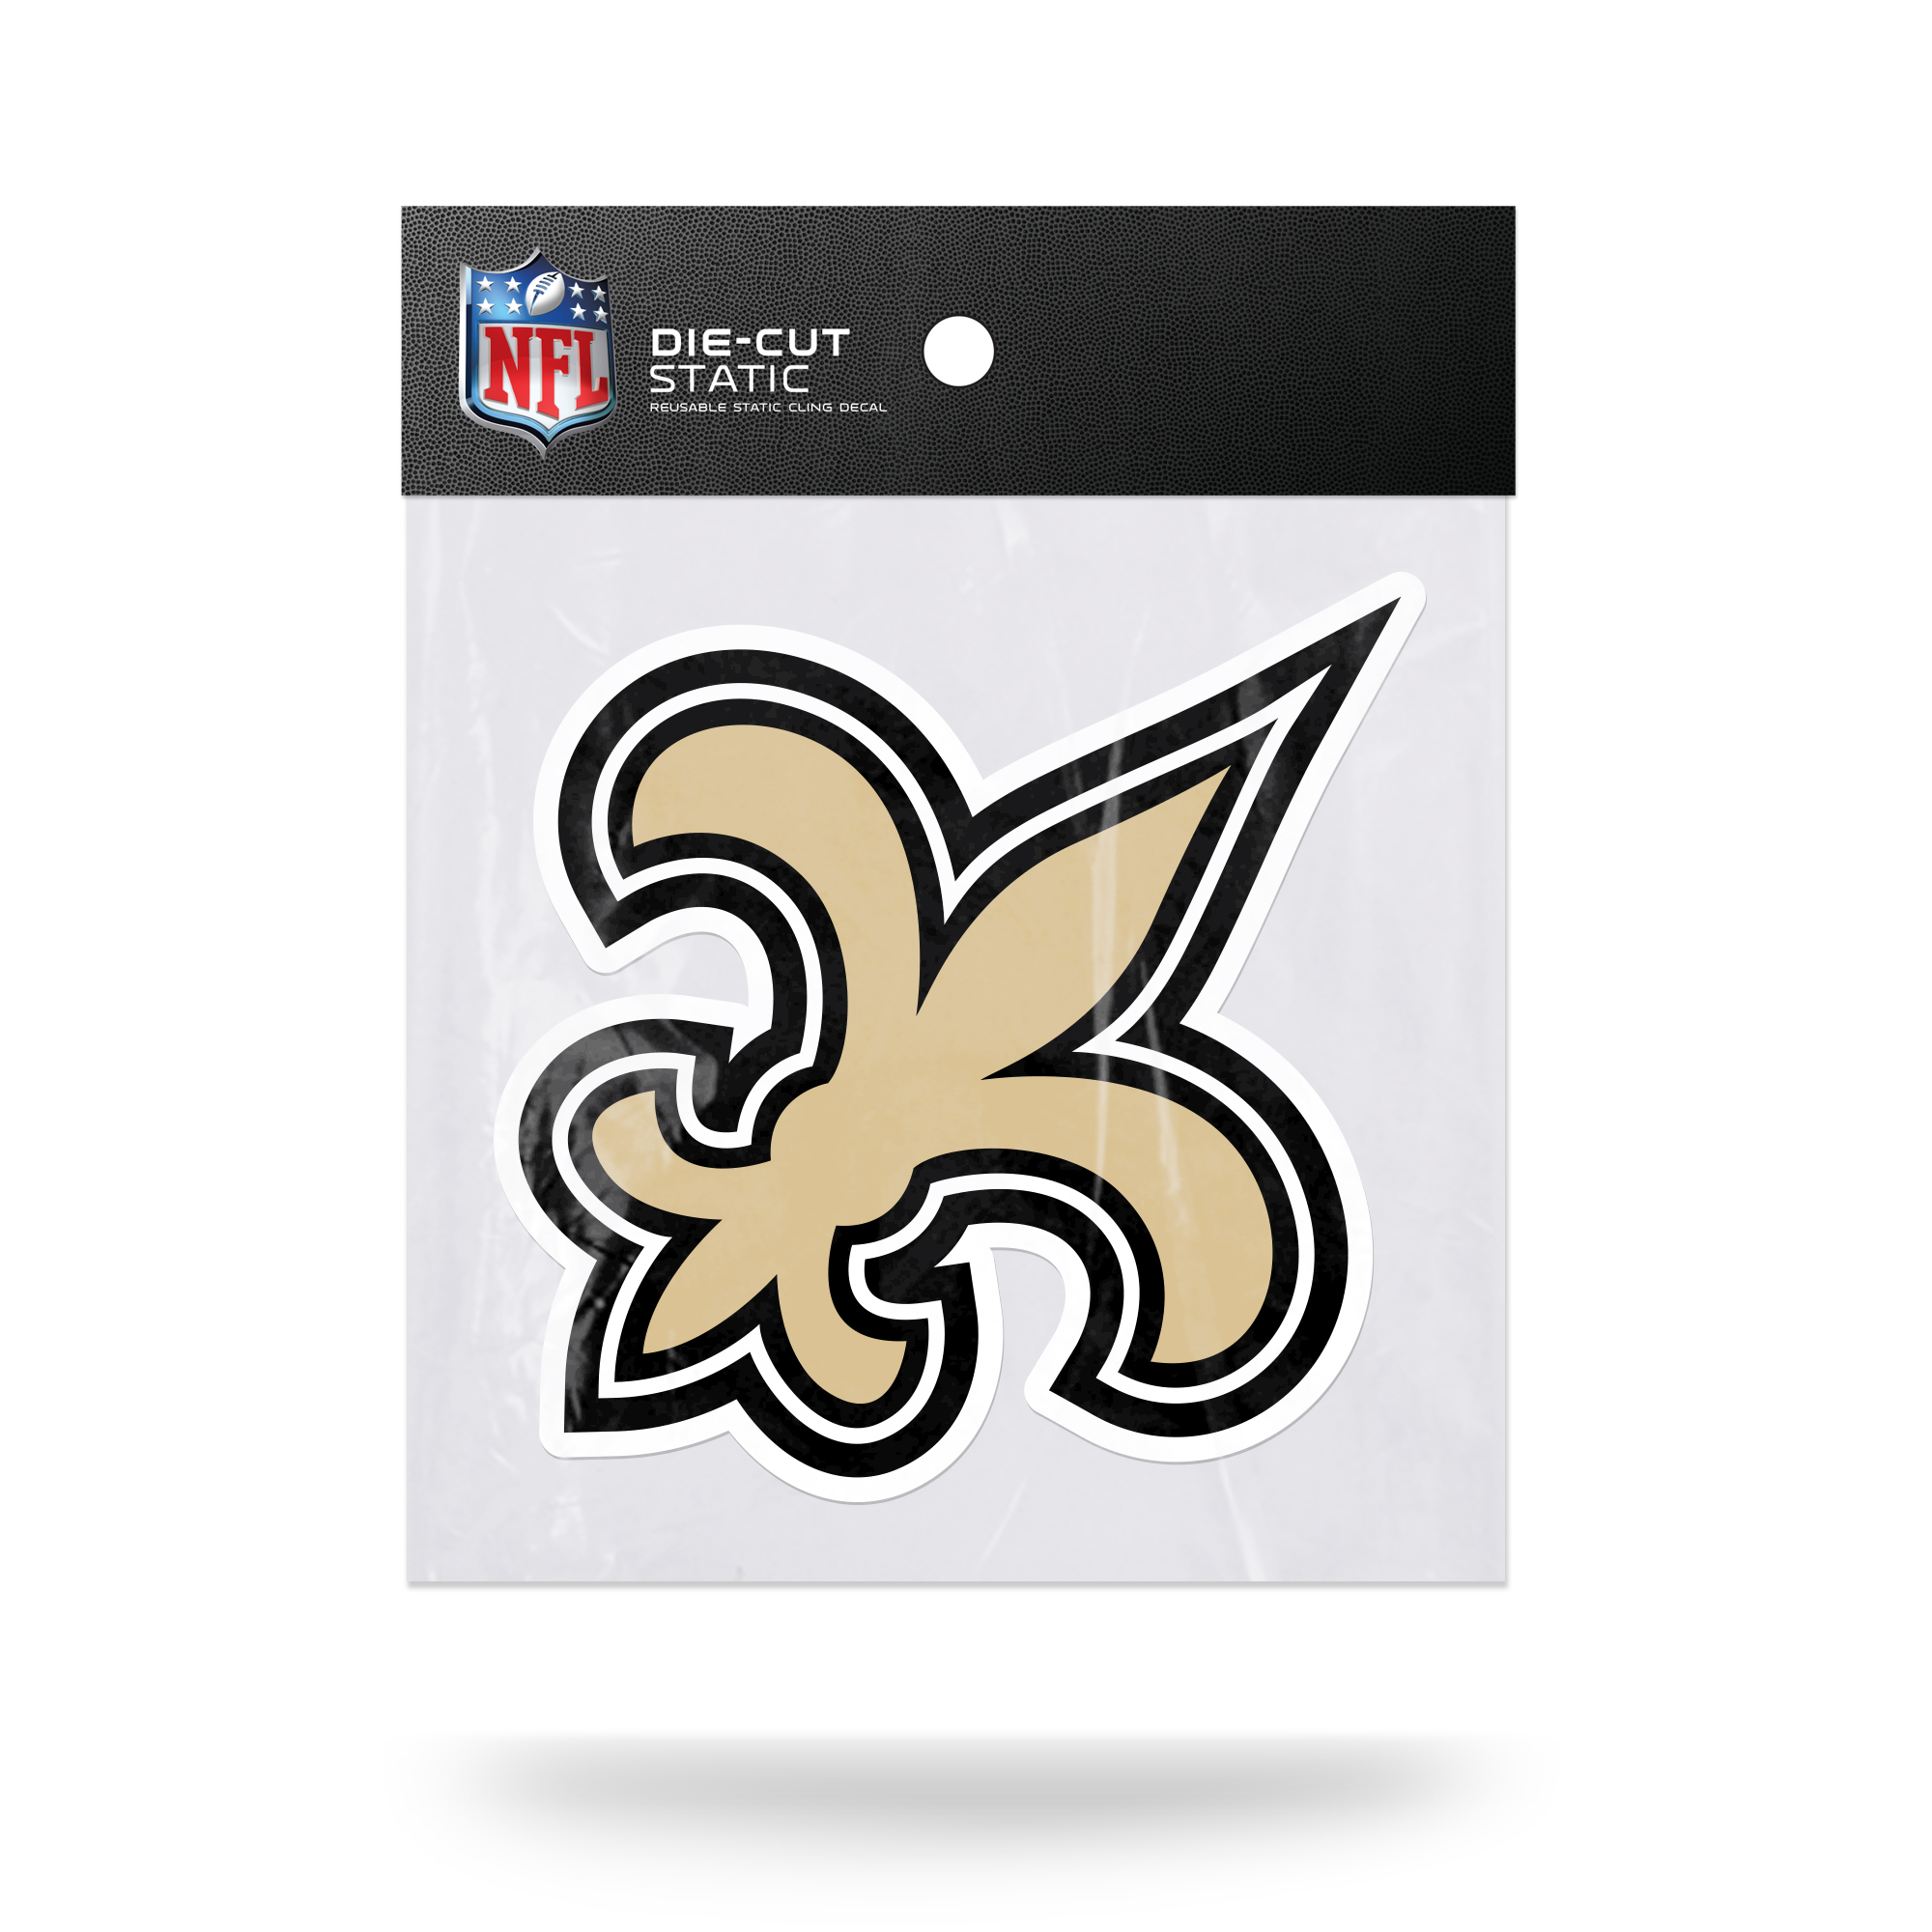 Officially Licensed NFL New Orleans Saints Static Cling